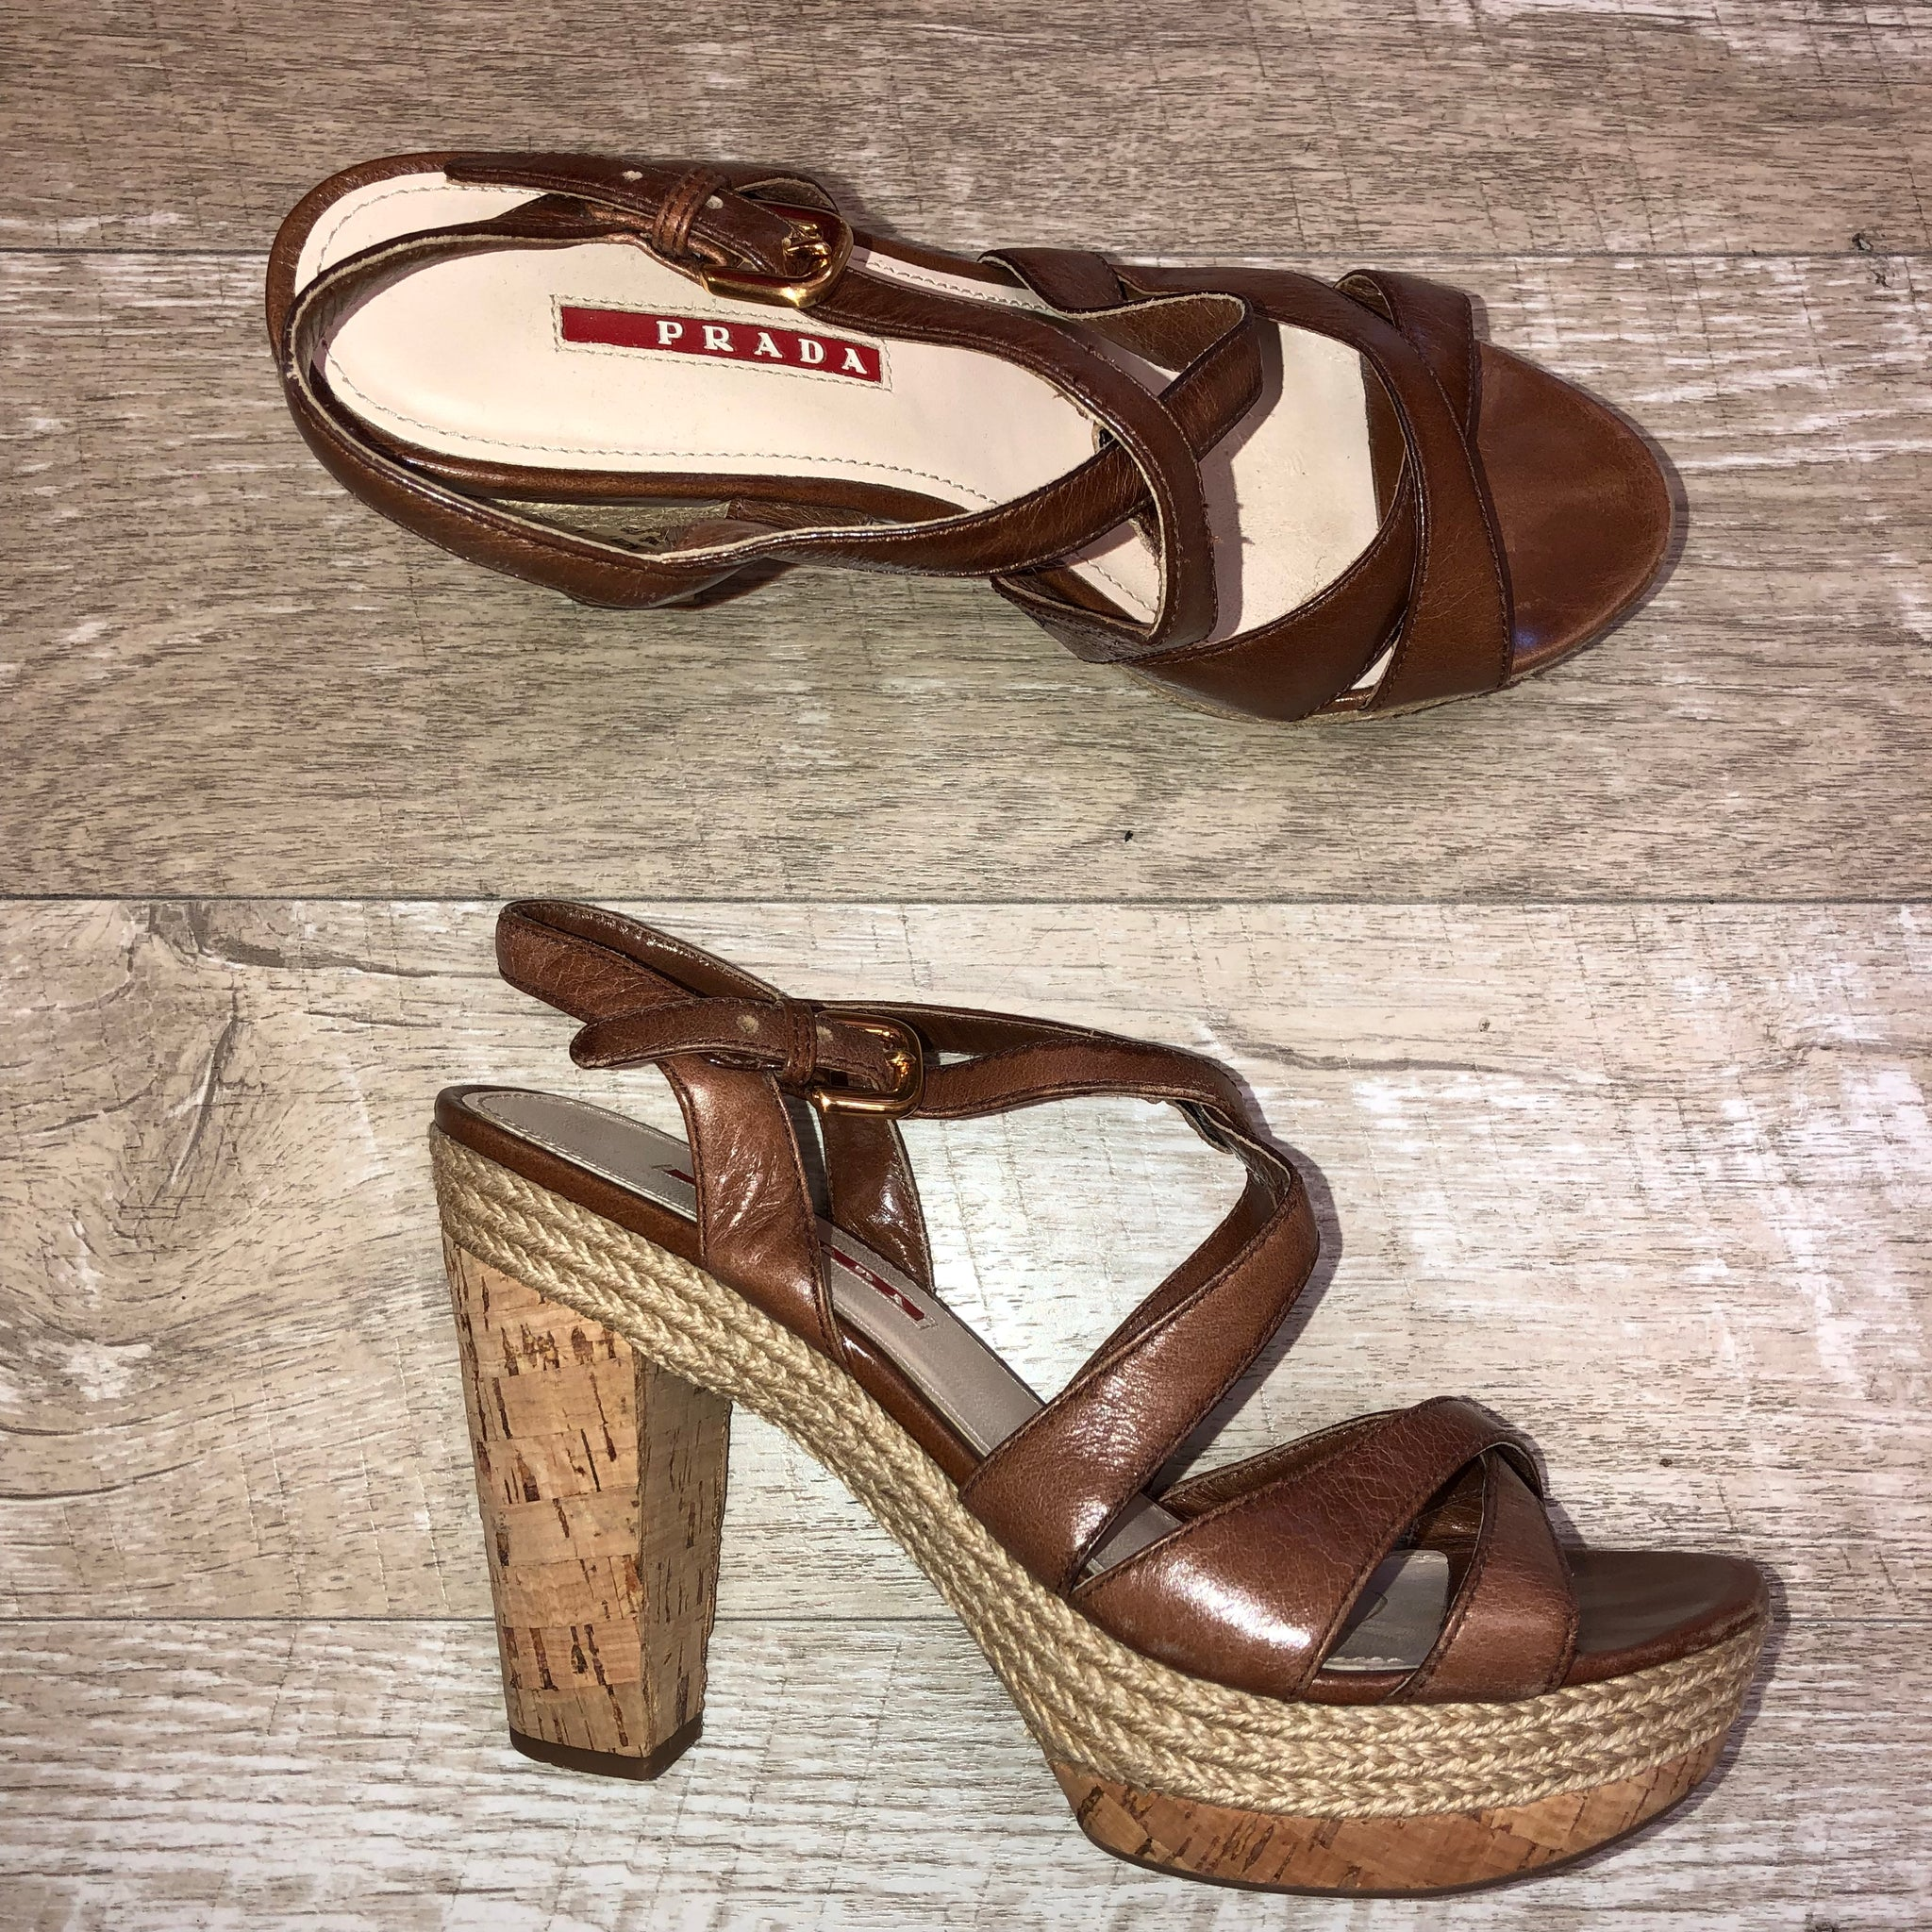 Prada Cork Platforms